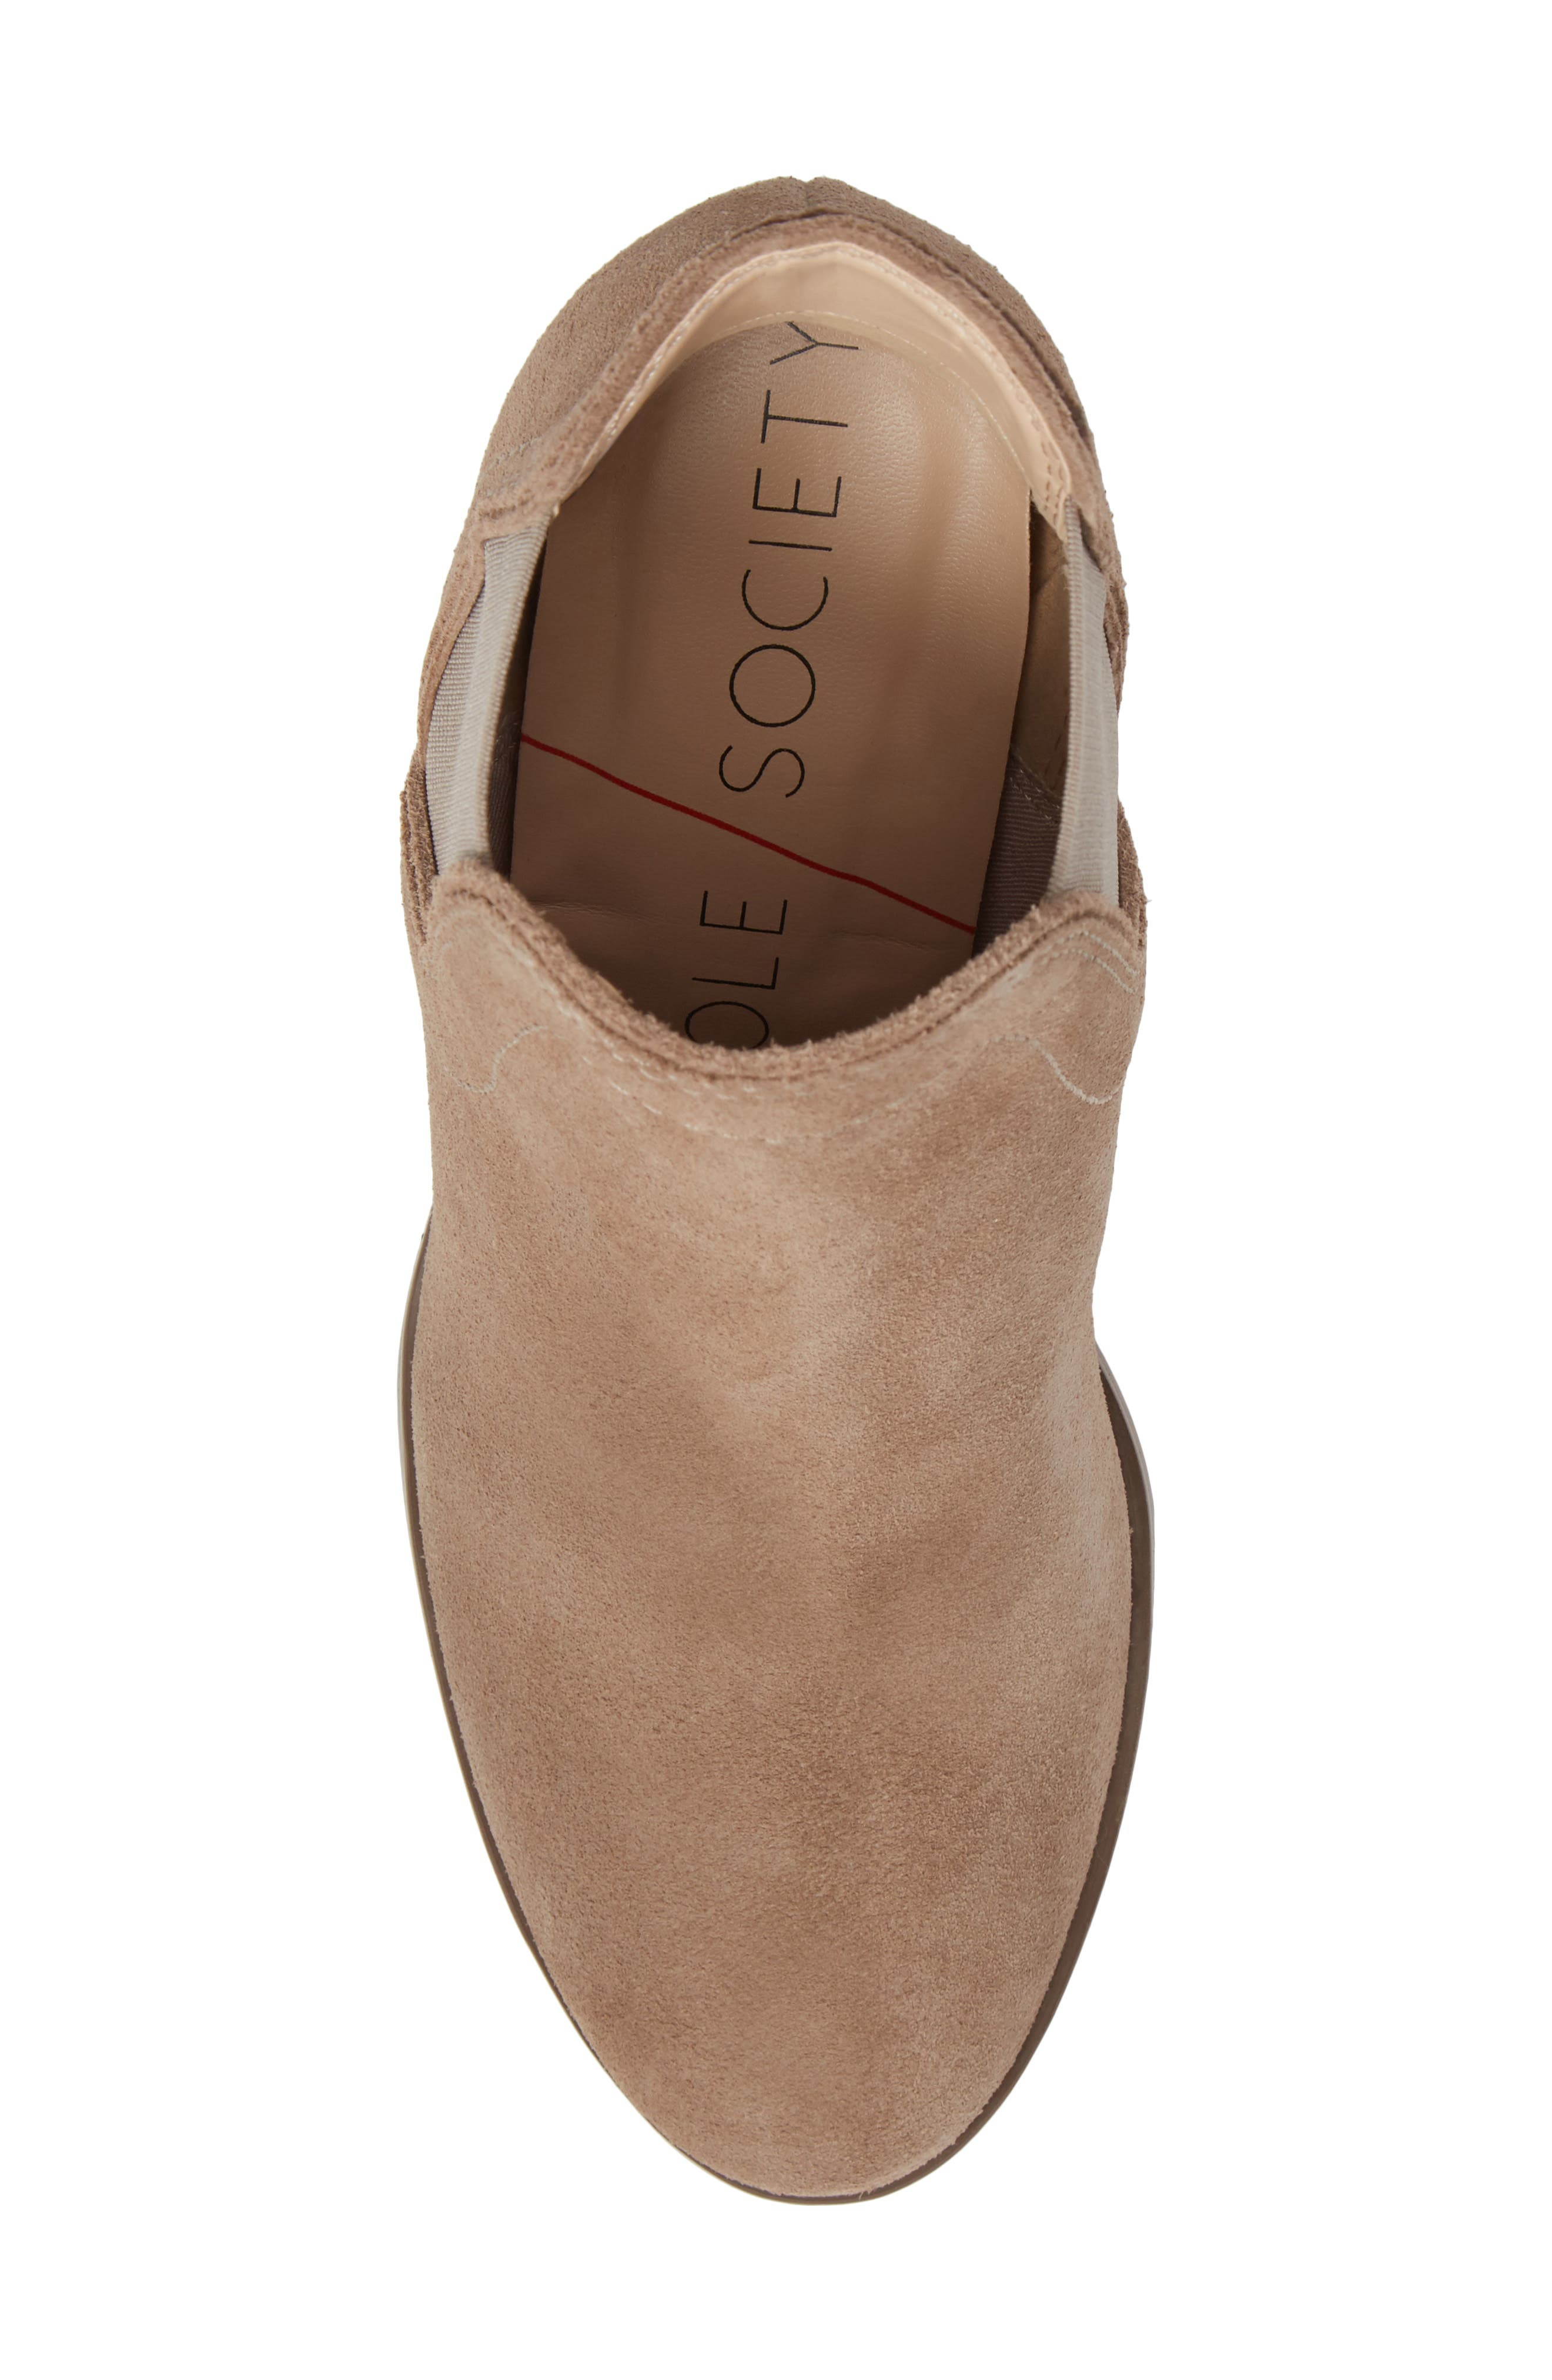 Carrillo Bootie,                             Alternate thumbnail 5, color,                             Taupe